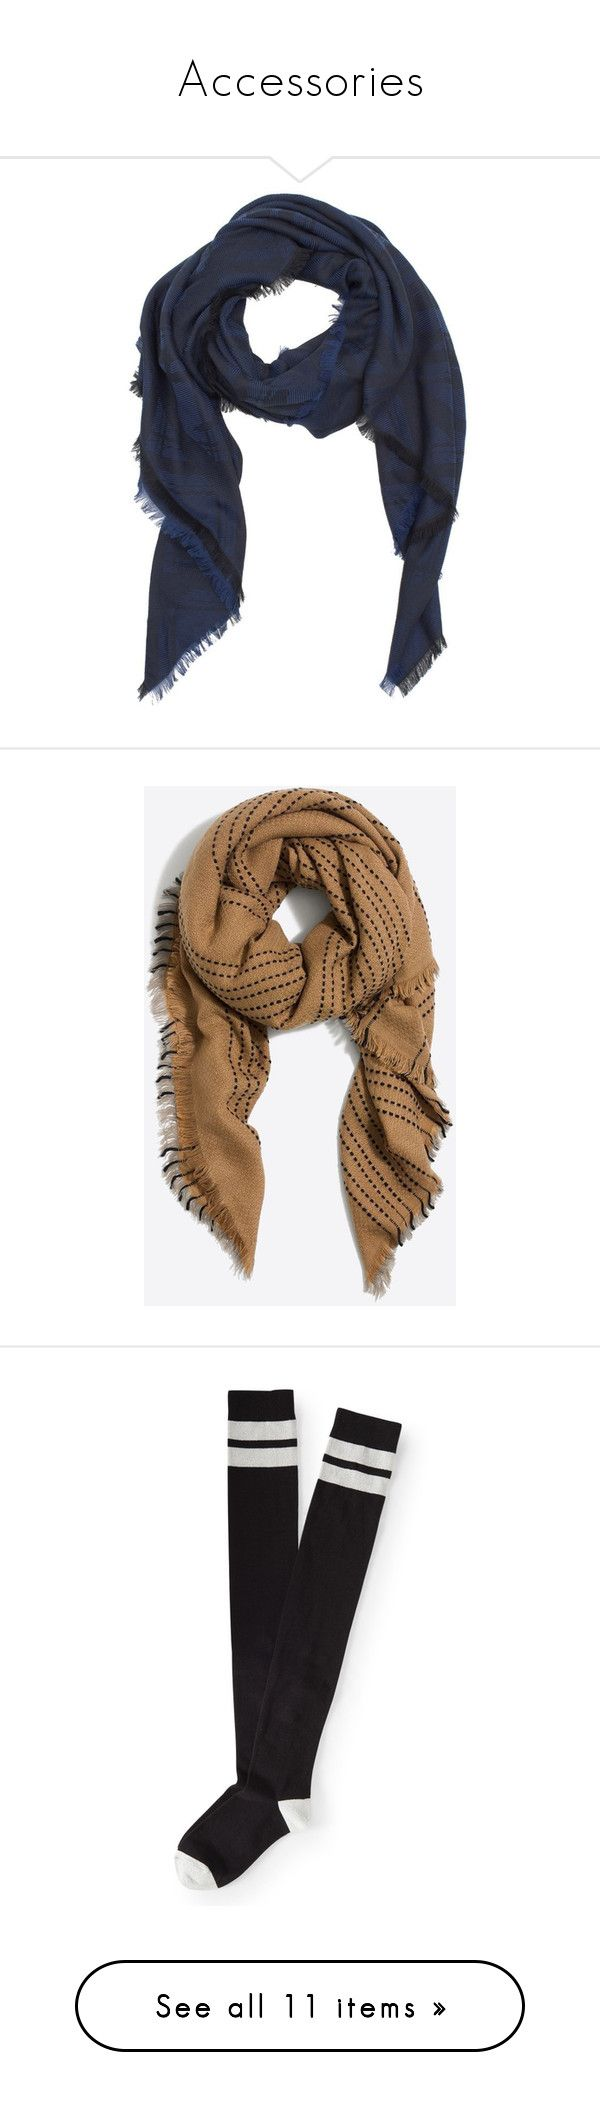 """""""Accessories"""" by clawsandclothes ❤ liked on Polyvore featuring casual, TeenWolf, inspiration, accessories, scarves, blue, blue shawl, cotton scarves, blue scarves and kenzo scarves"""